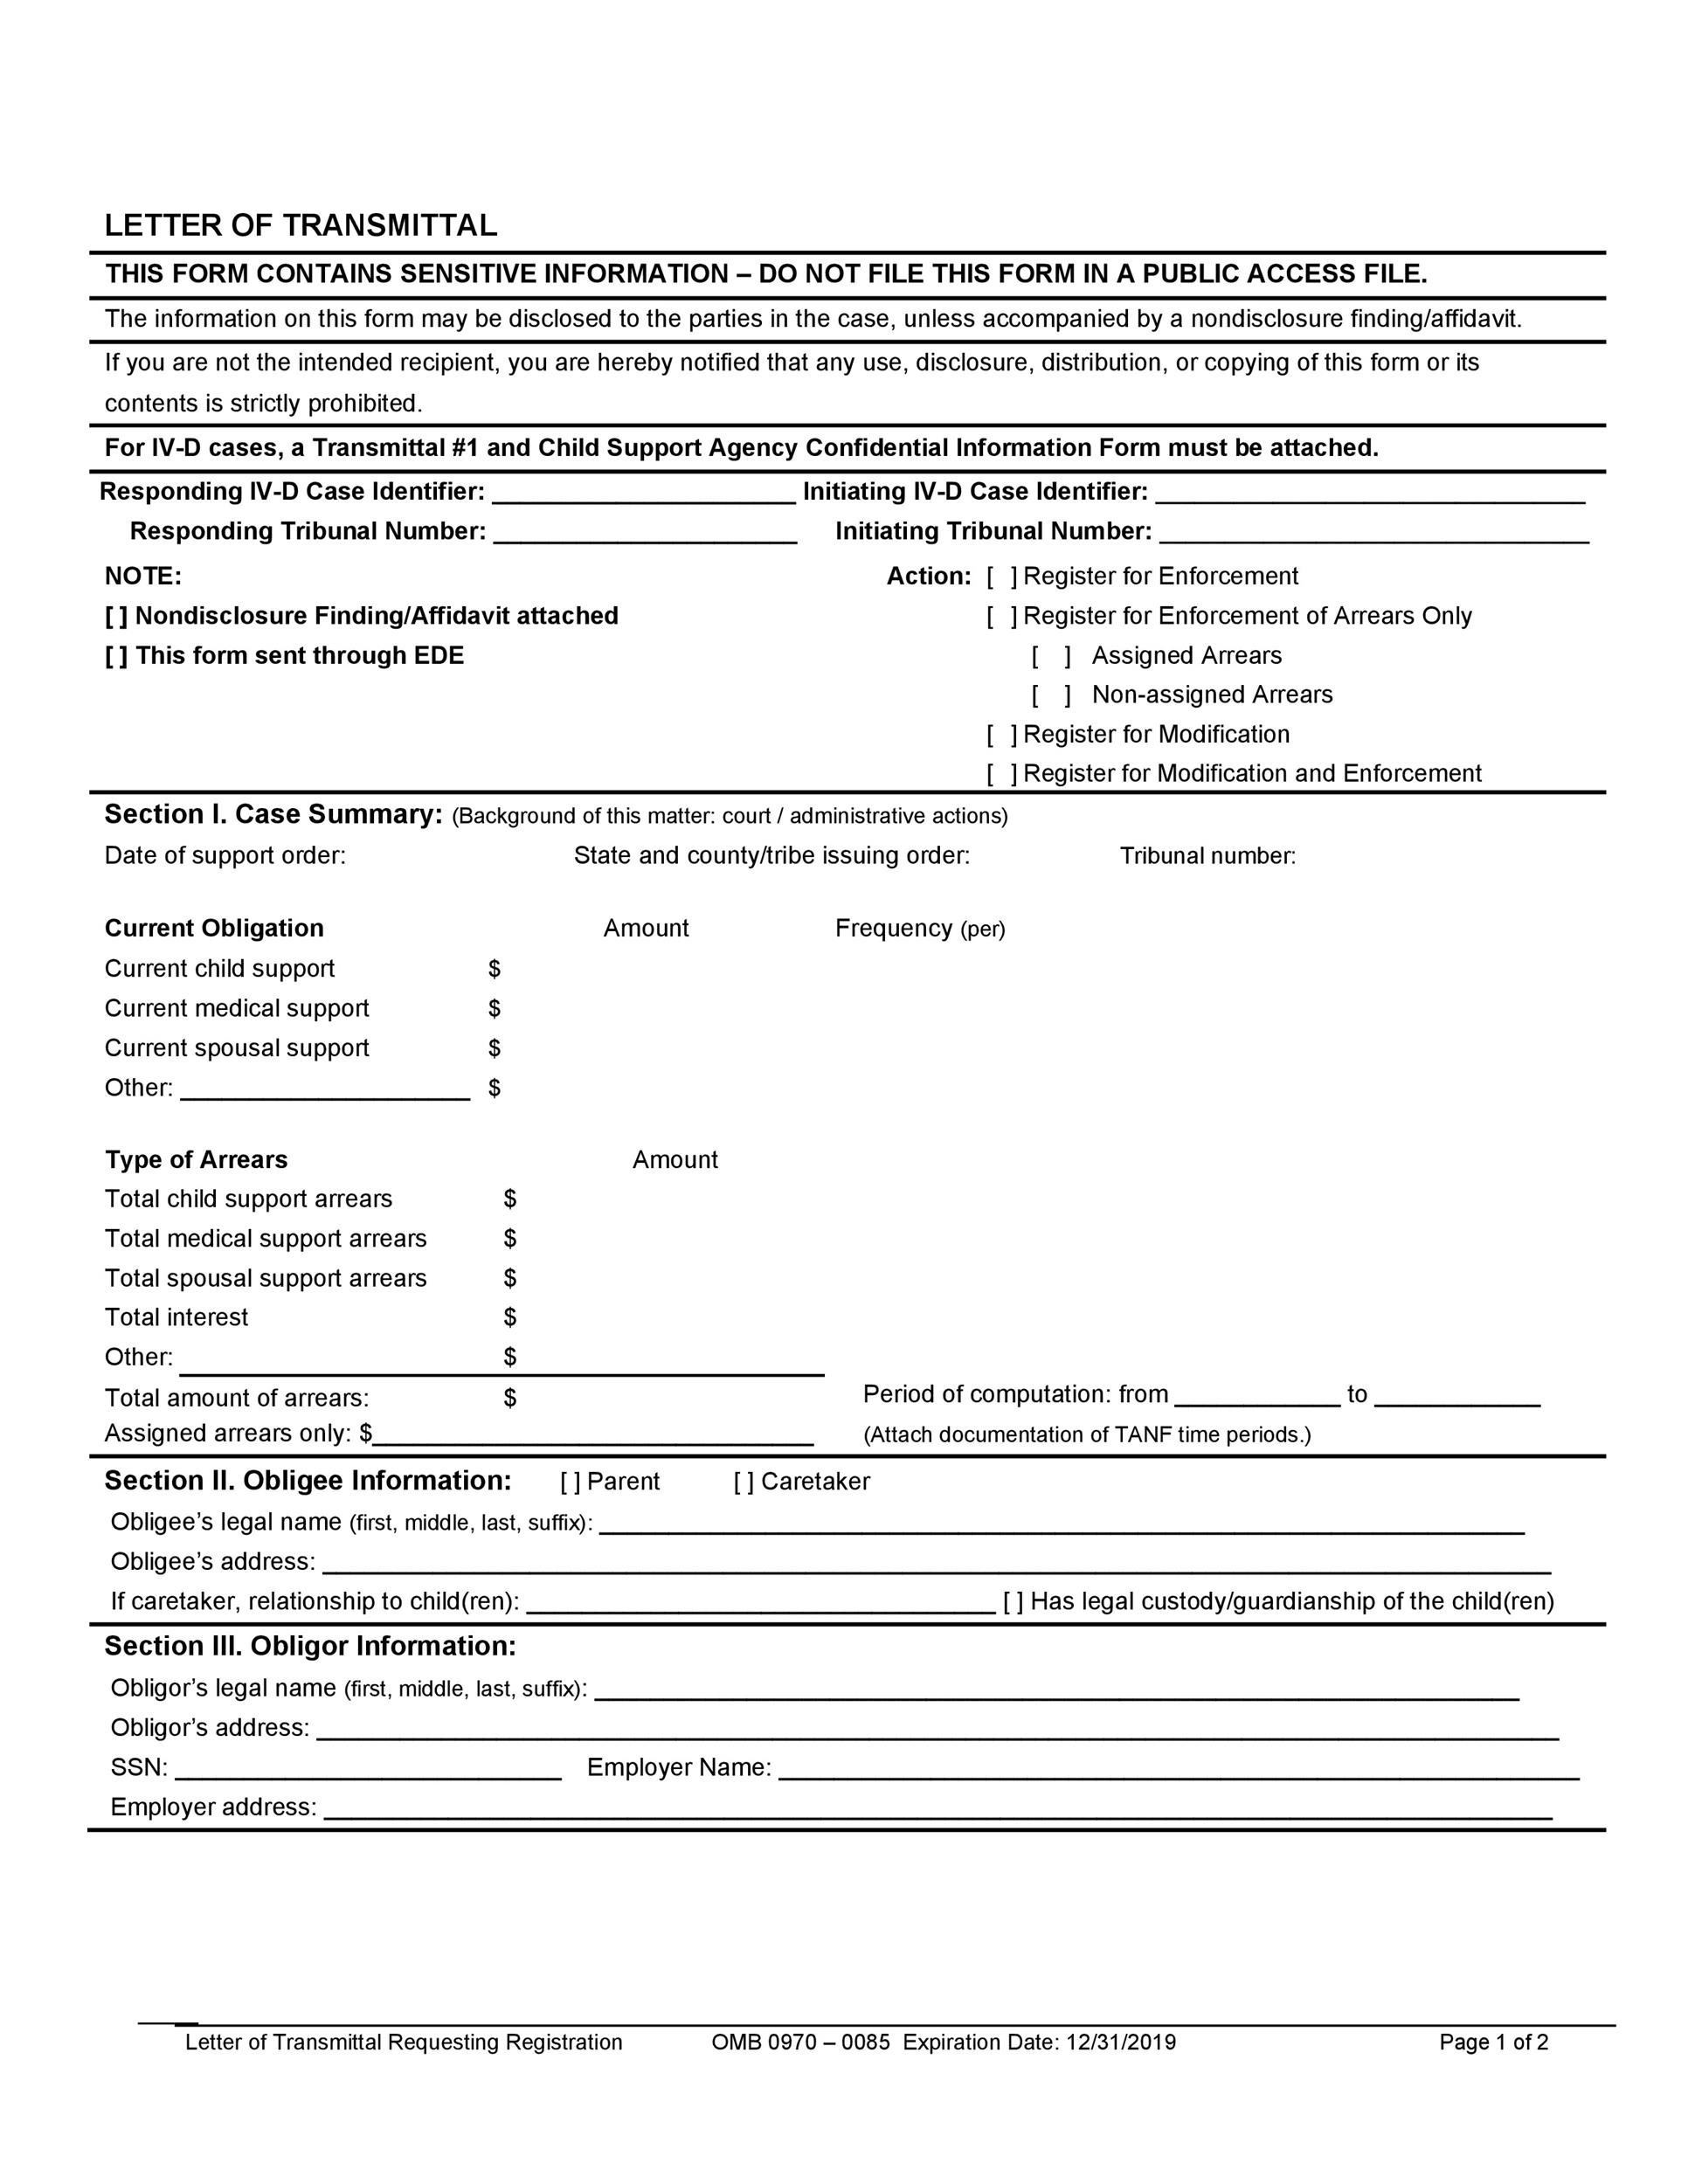 letter of transmittal template 21 Template Lab – Transmittal Letter Template